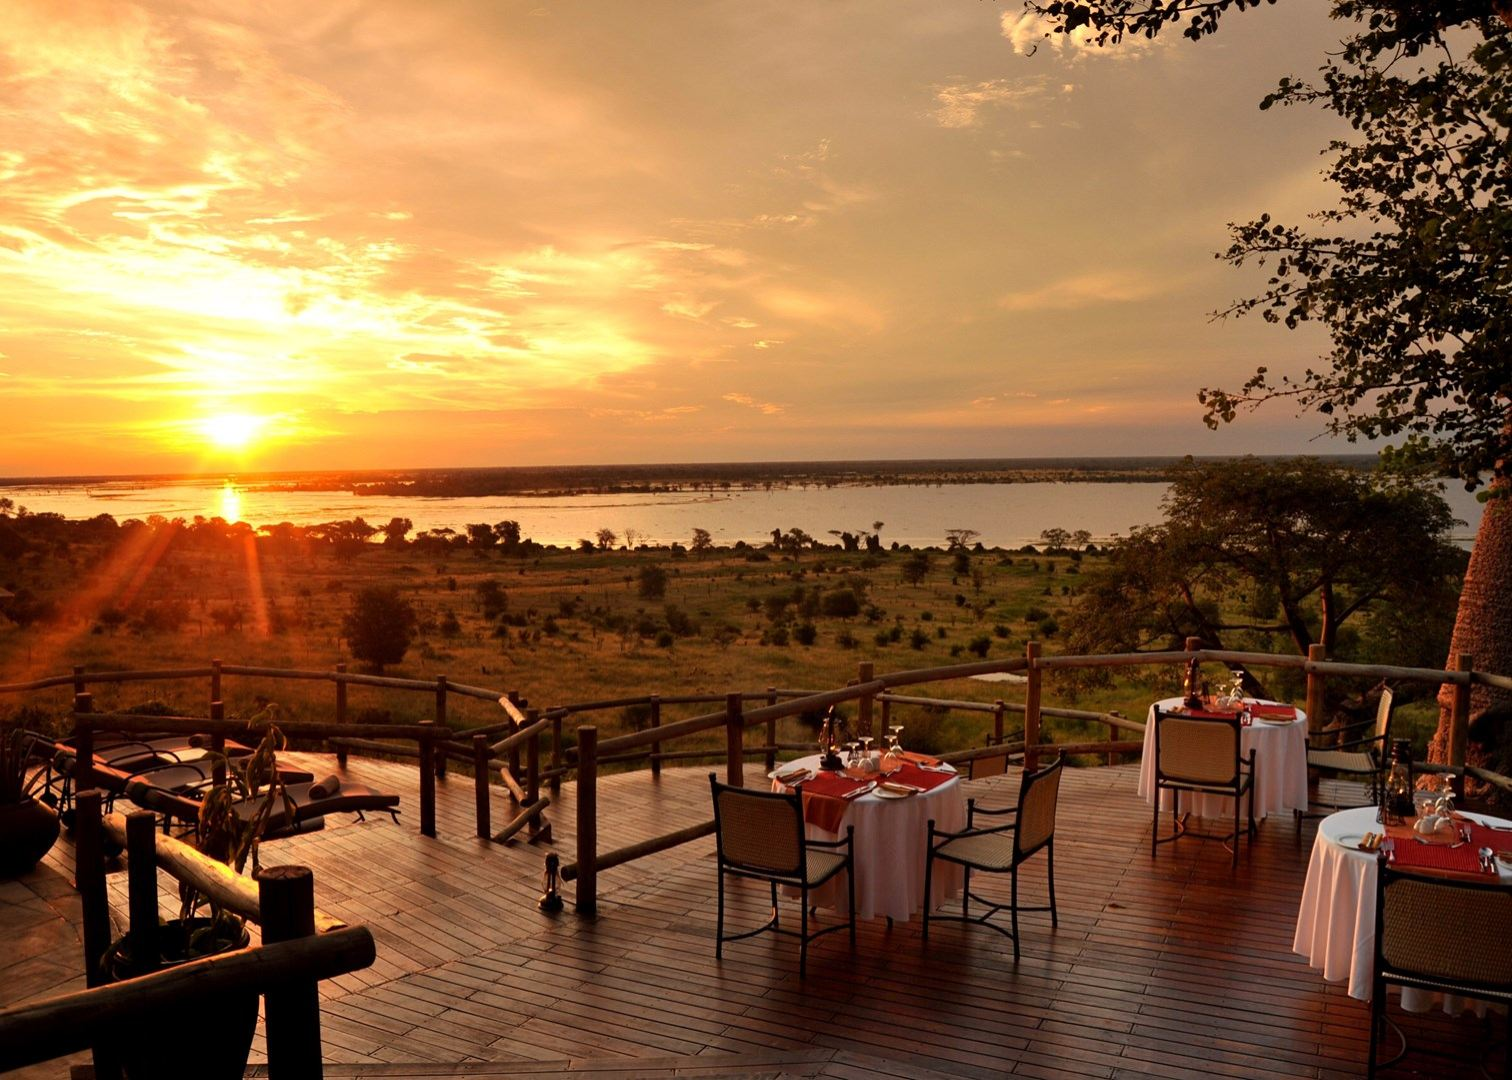 Ngoma_Safari_Lodge_SD_BSC_02